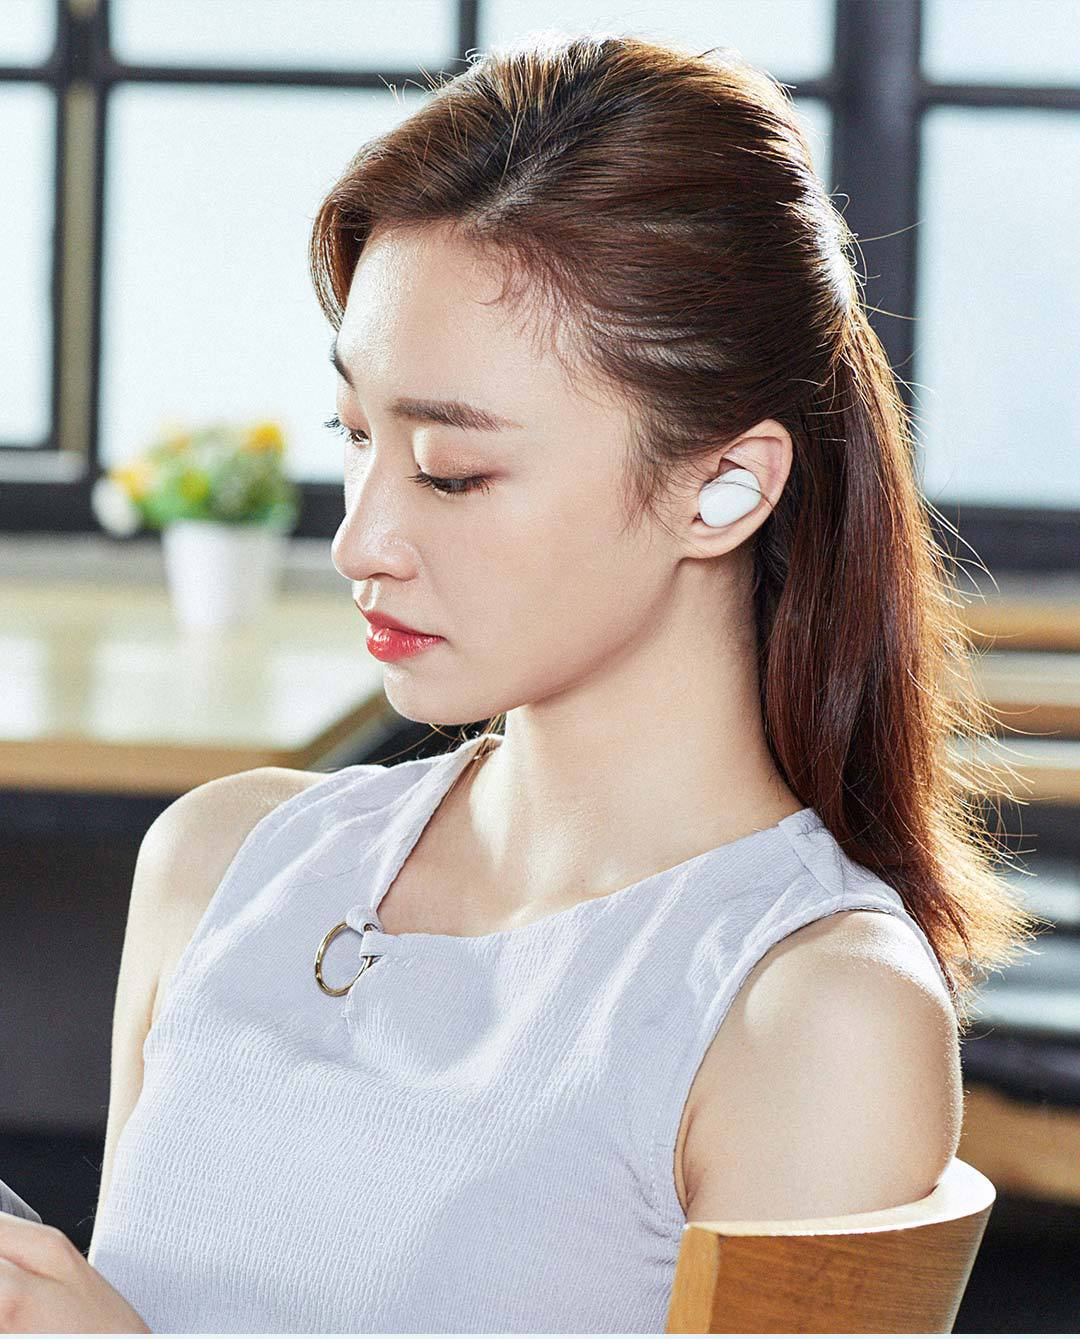 tai nghe bluetooth true wireless xiaomi airdots youth edition 605065d034115